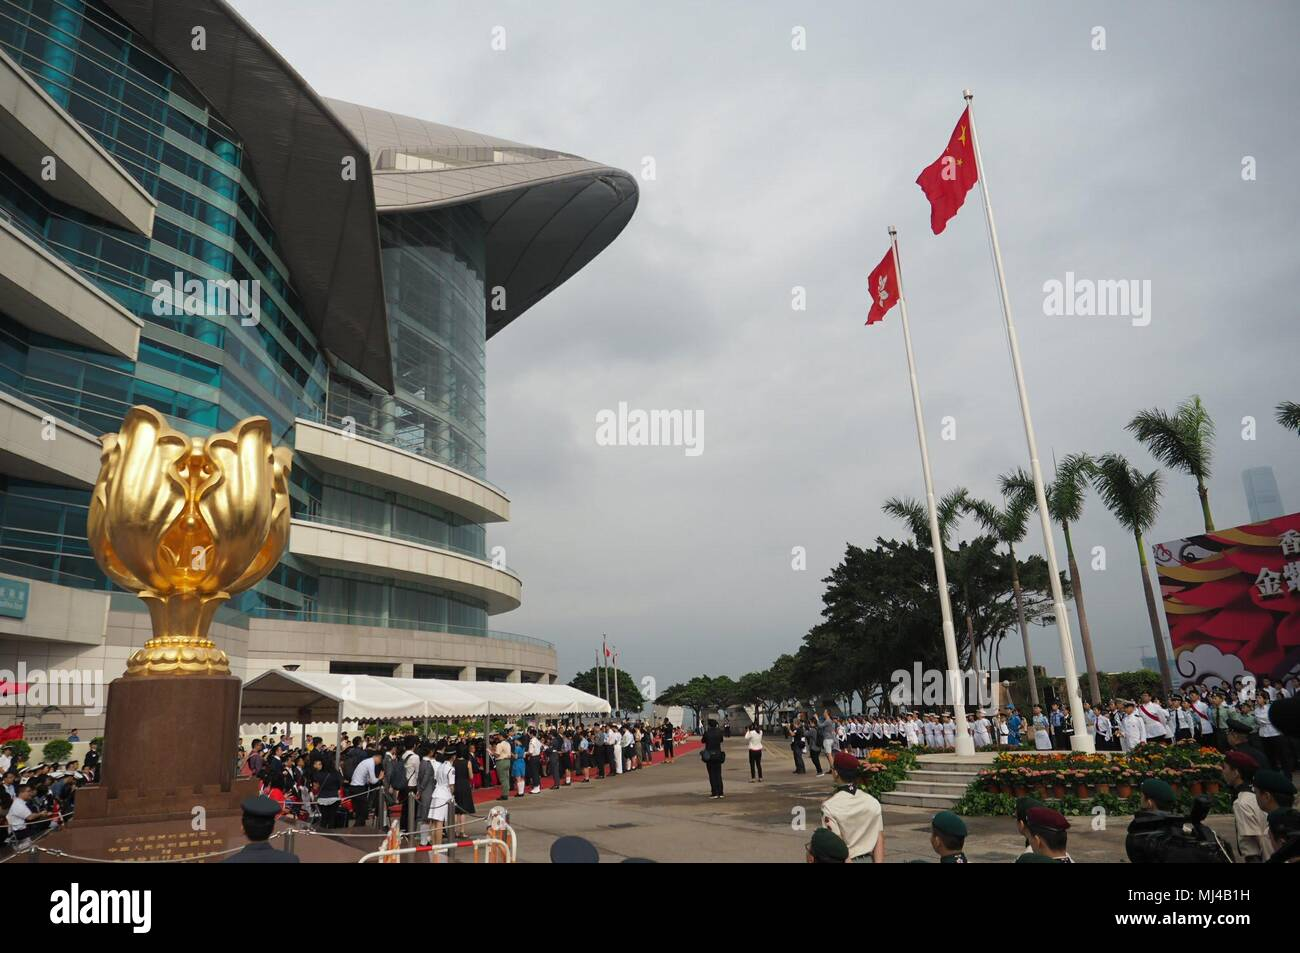 (180504) -- HONG KONG, May 4, 2018 (Xinhua) -- A flag-raising ceremony marking the Chinese Youth Day is held at the Golden Bauhinia Square in south China's Hong Kong, May 4, 2018.  Friday marked the anniversary of the May 4th Movement, a patriotic campaign that started from universities and was launched in 1919 by young Chinese to fight imperialism and feudalism. May 4th later was established as Youth Day in 1949 by the Chinese government.  (Xinhua/Wang Shen) (lmm) - Stock Image